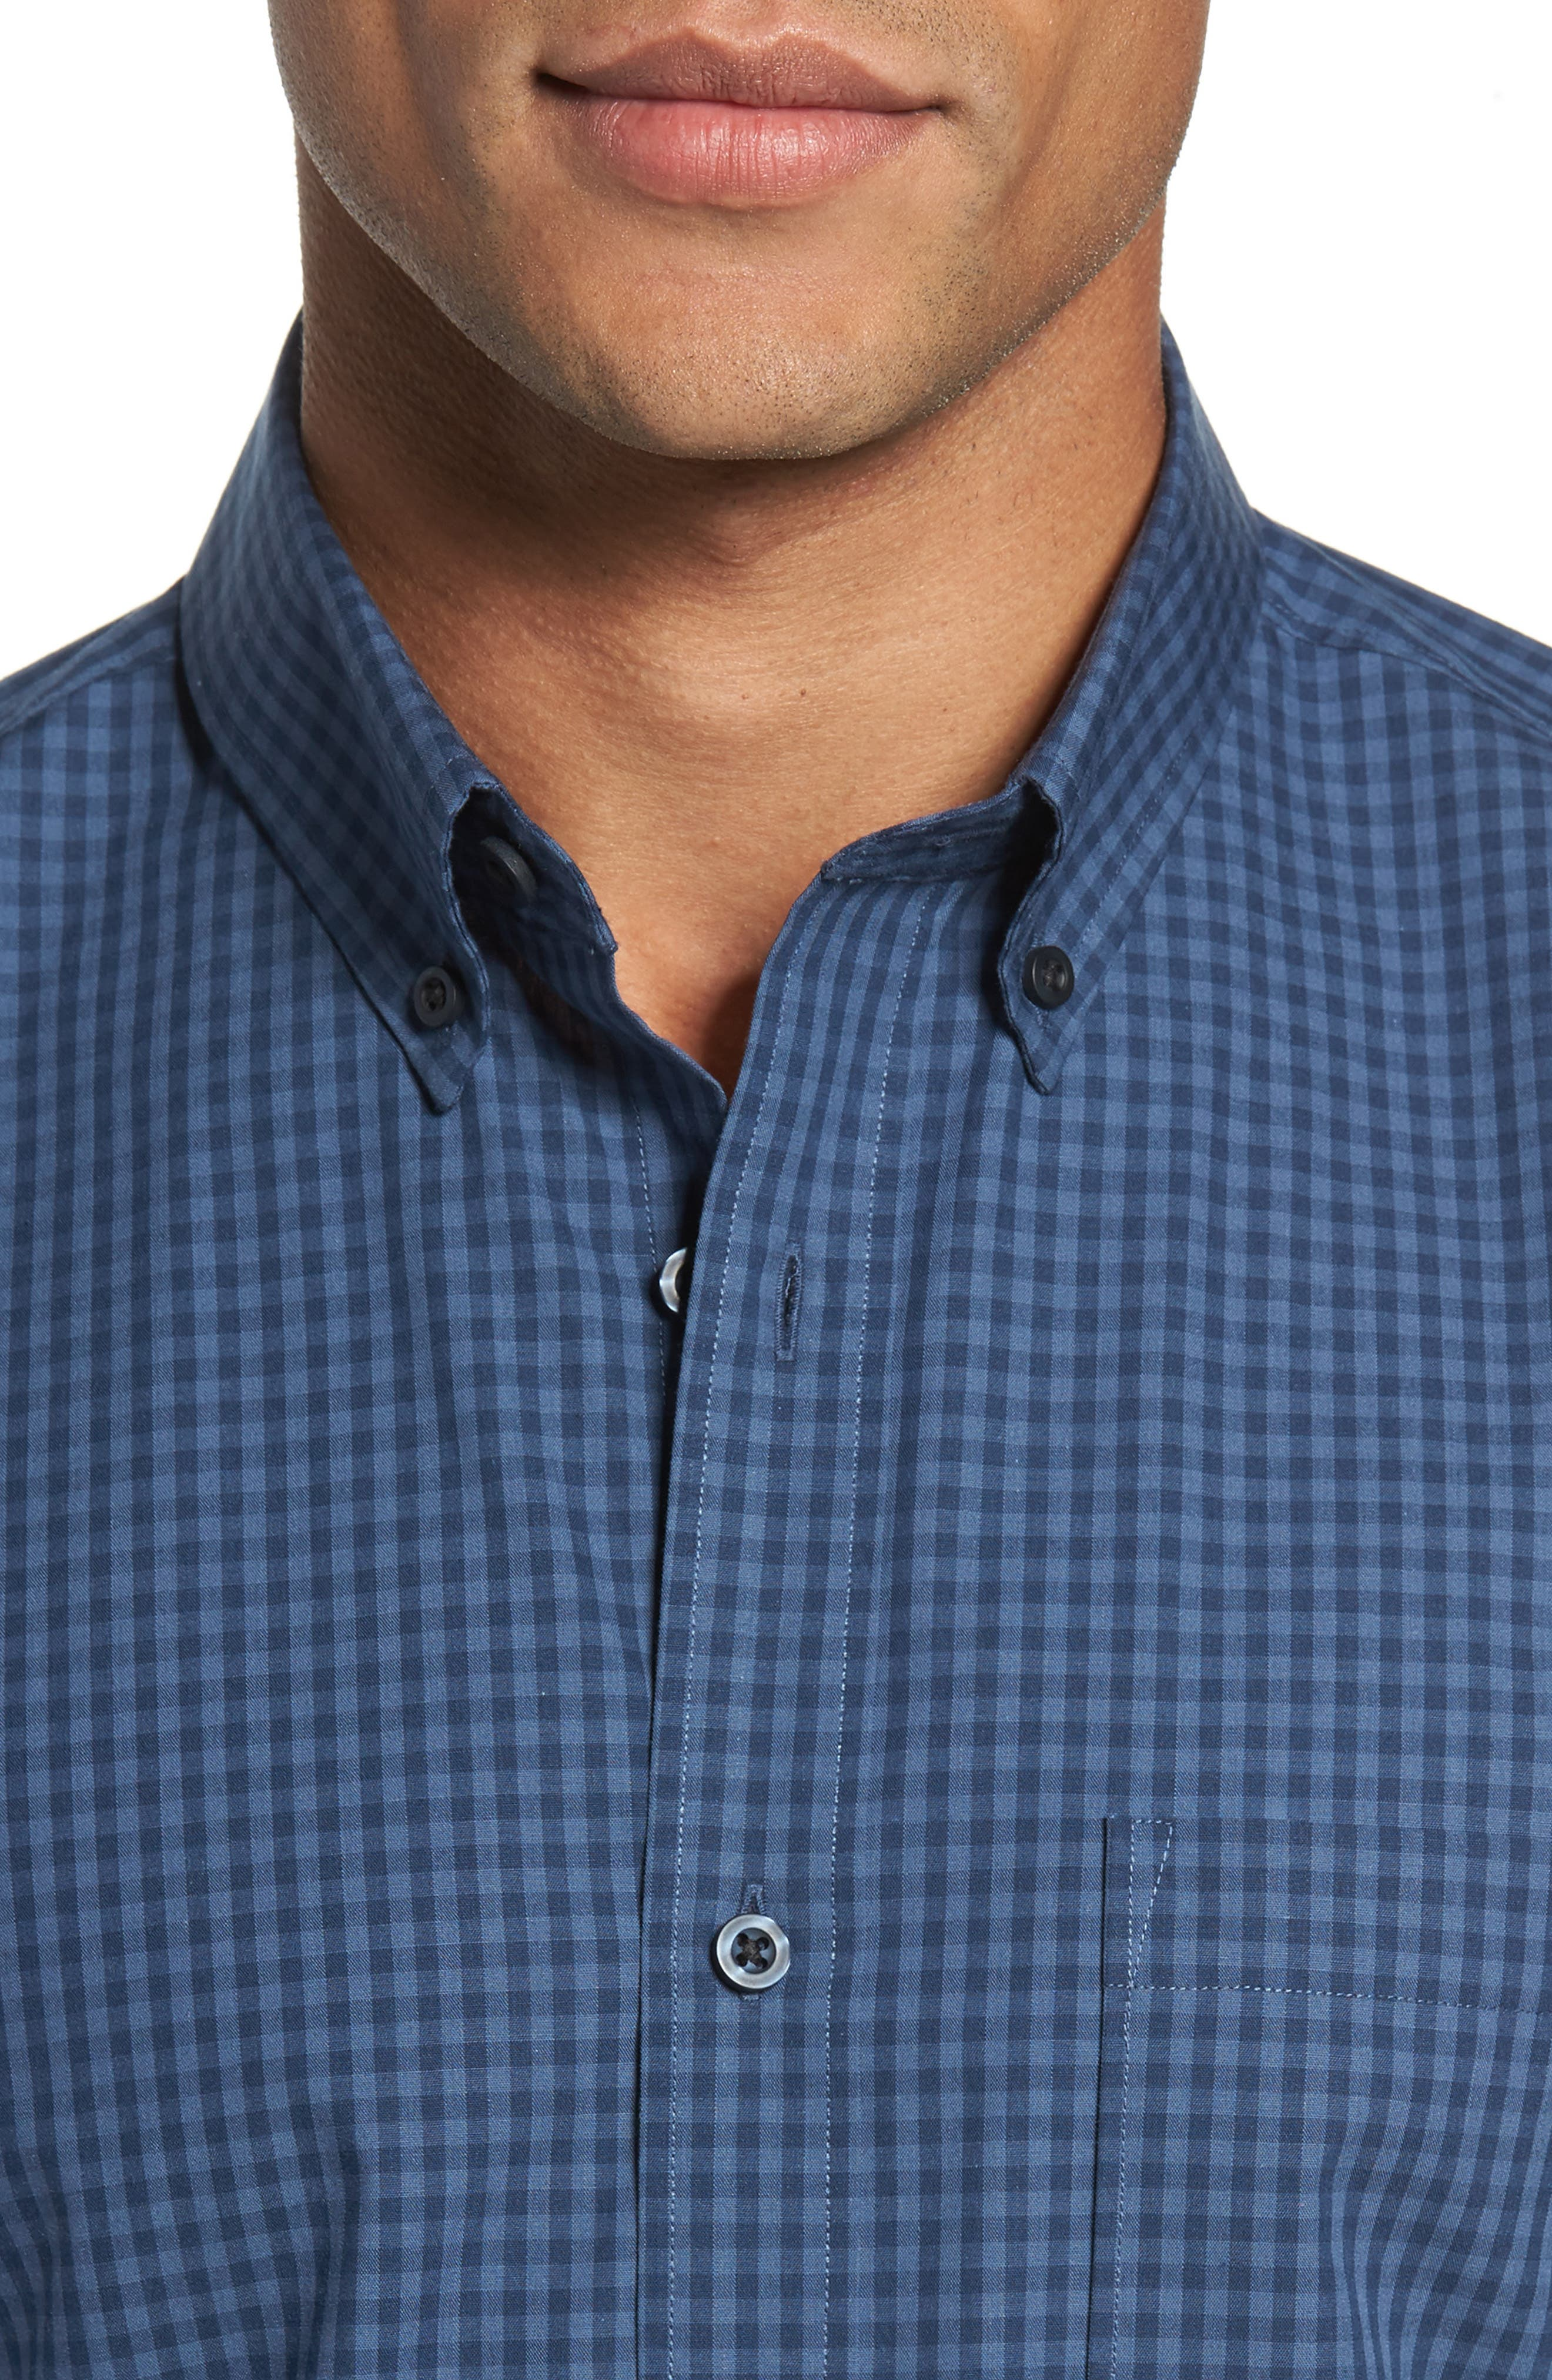 Trim Fit Non-Iron Gingham Sport Shirt,                             Alternate thumbnail 4, color,                             Blue Vintage Navy Gingham